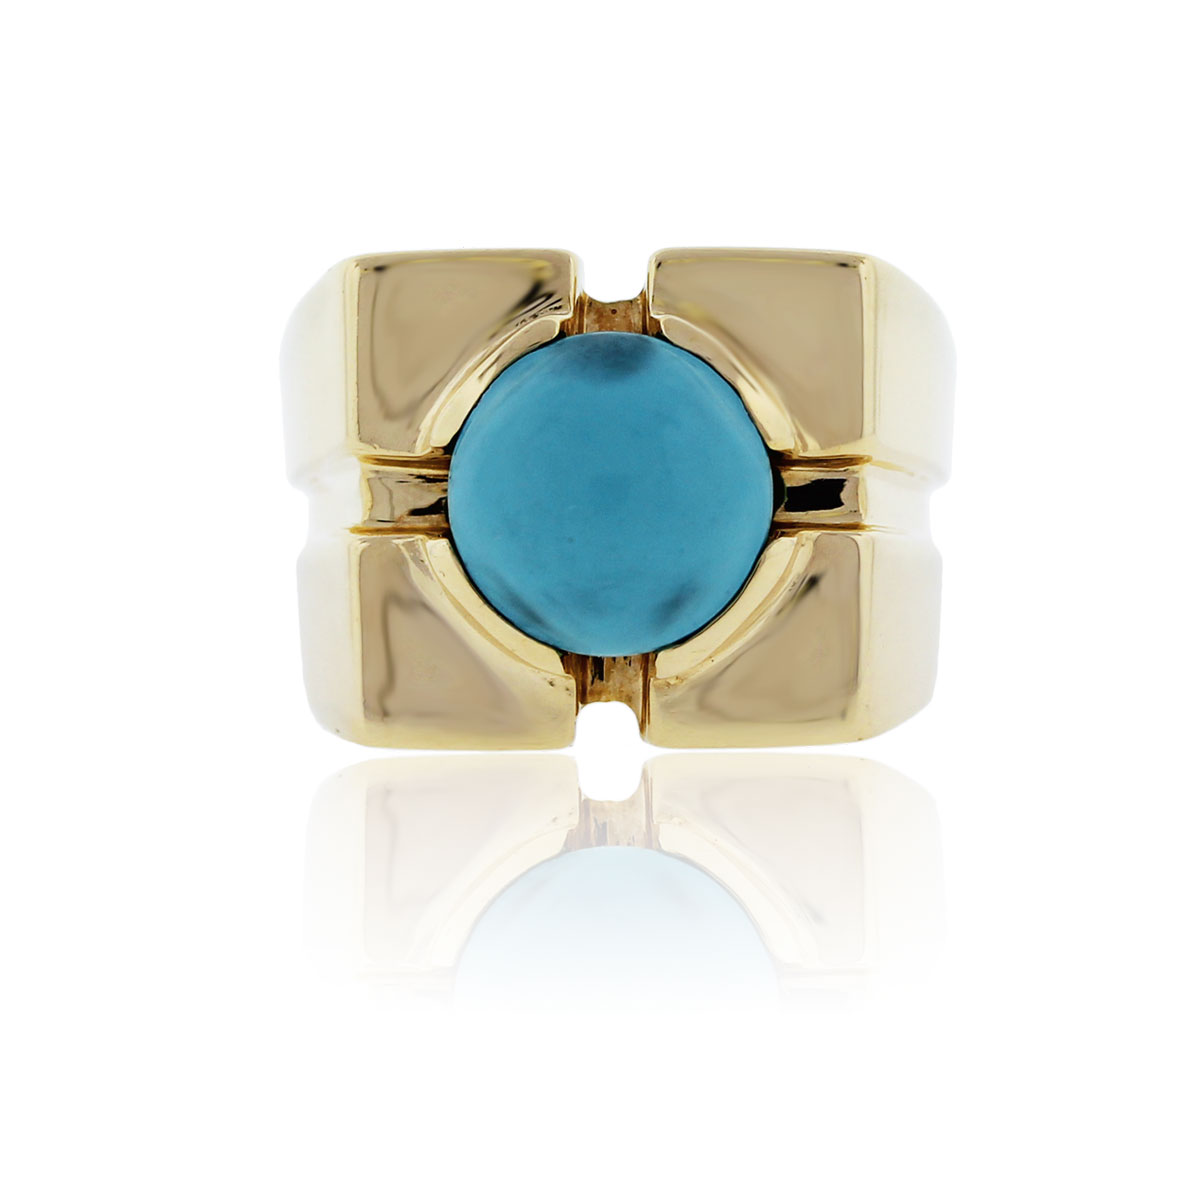 You are viewing this 18k Yellow Gold Round Turquoise Cocktail Ring!